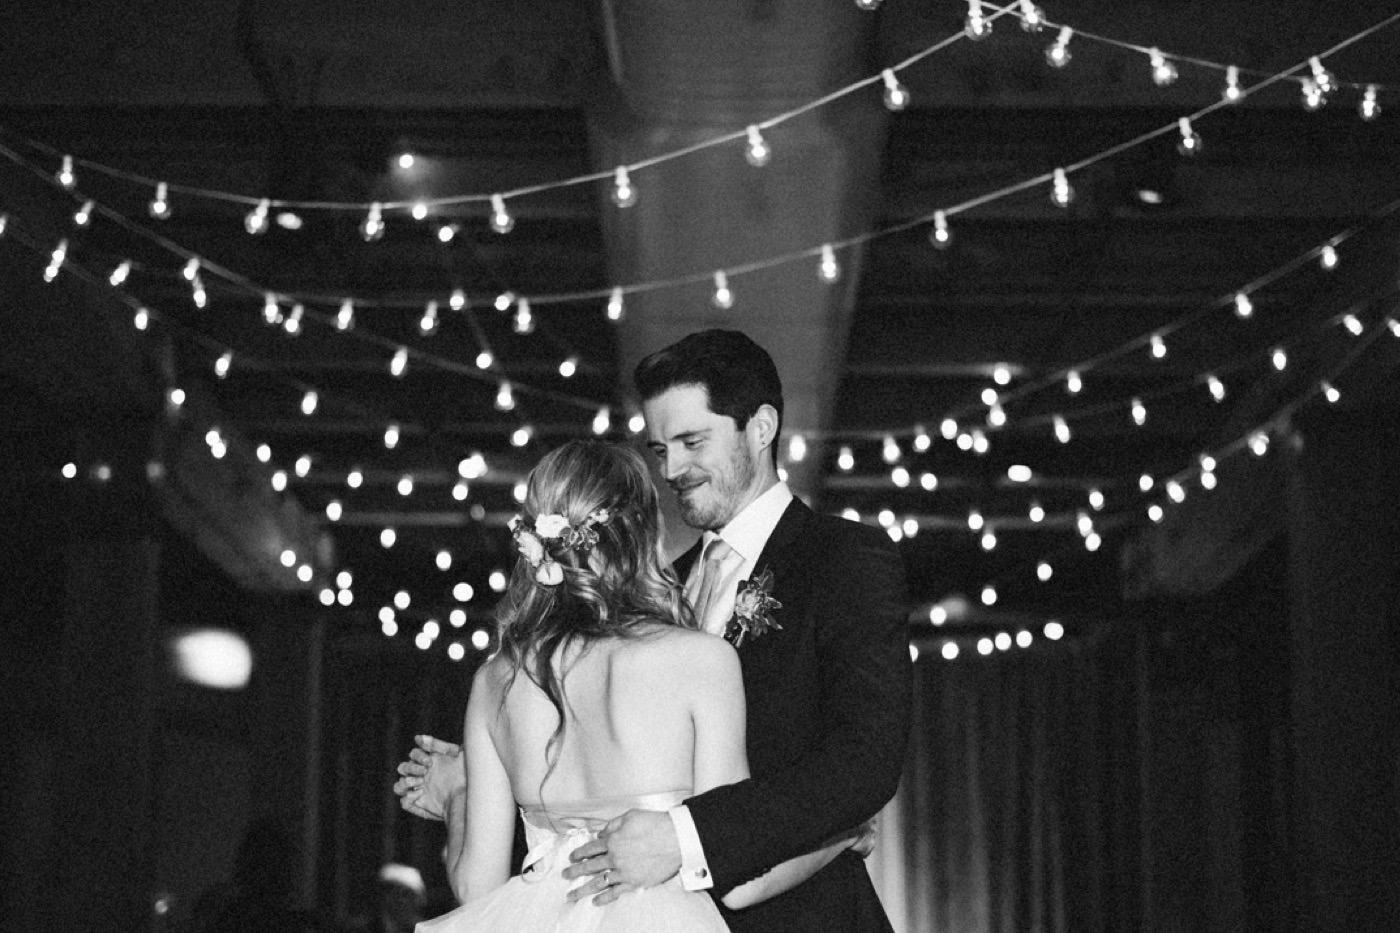 81_Lucy-Daniel-Chicago-Wedding-By-Sarah-Katherine-Davis-Photography0866bw.jpg